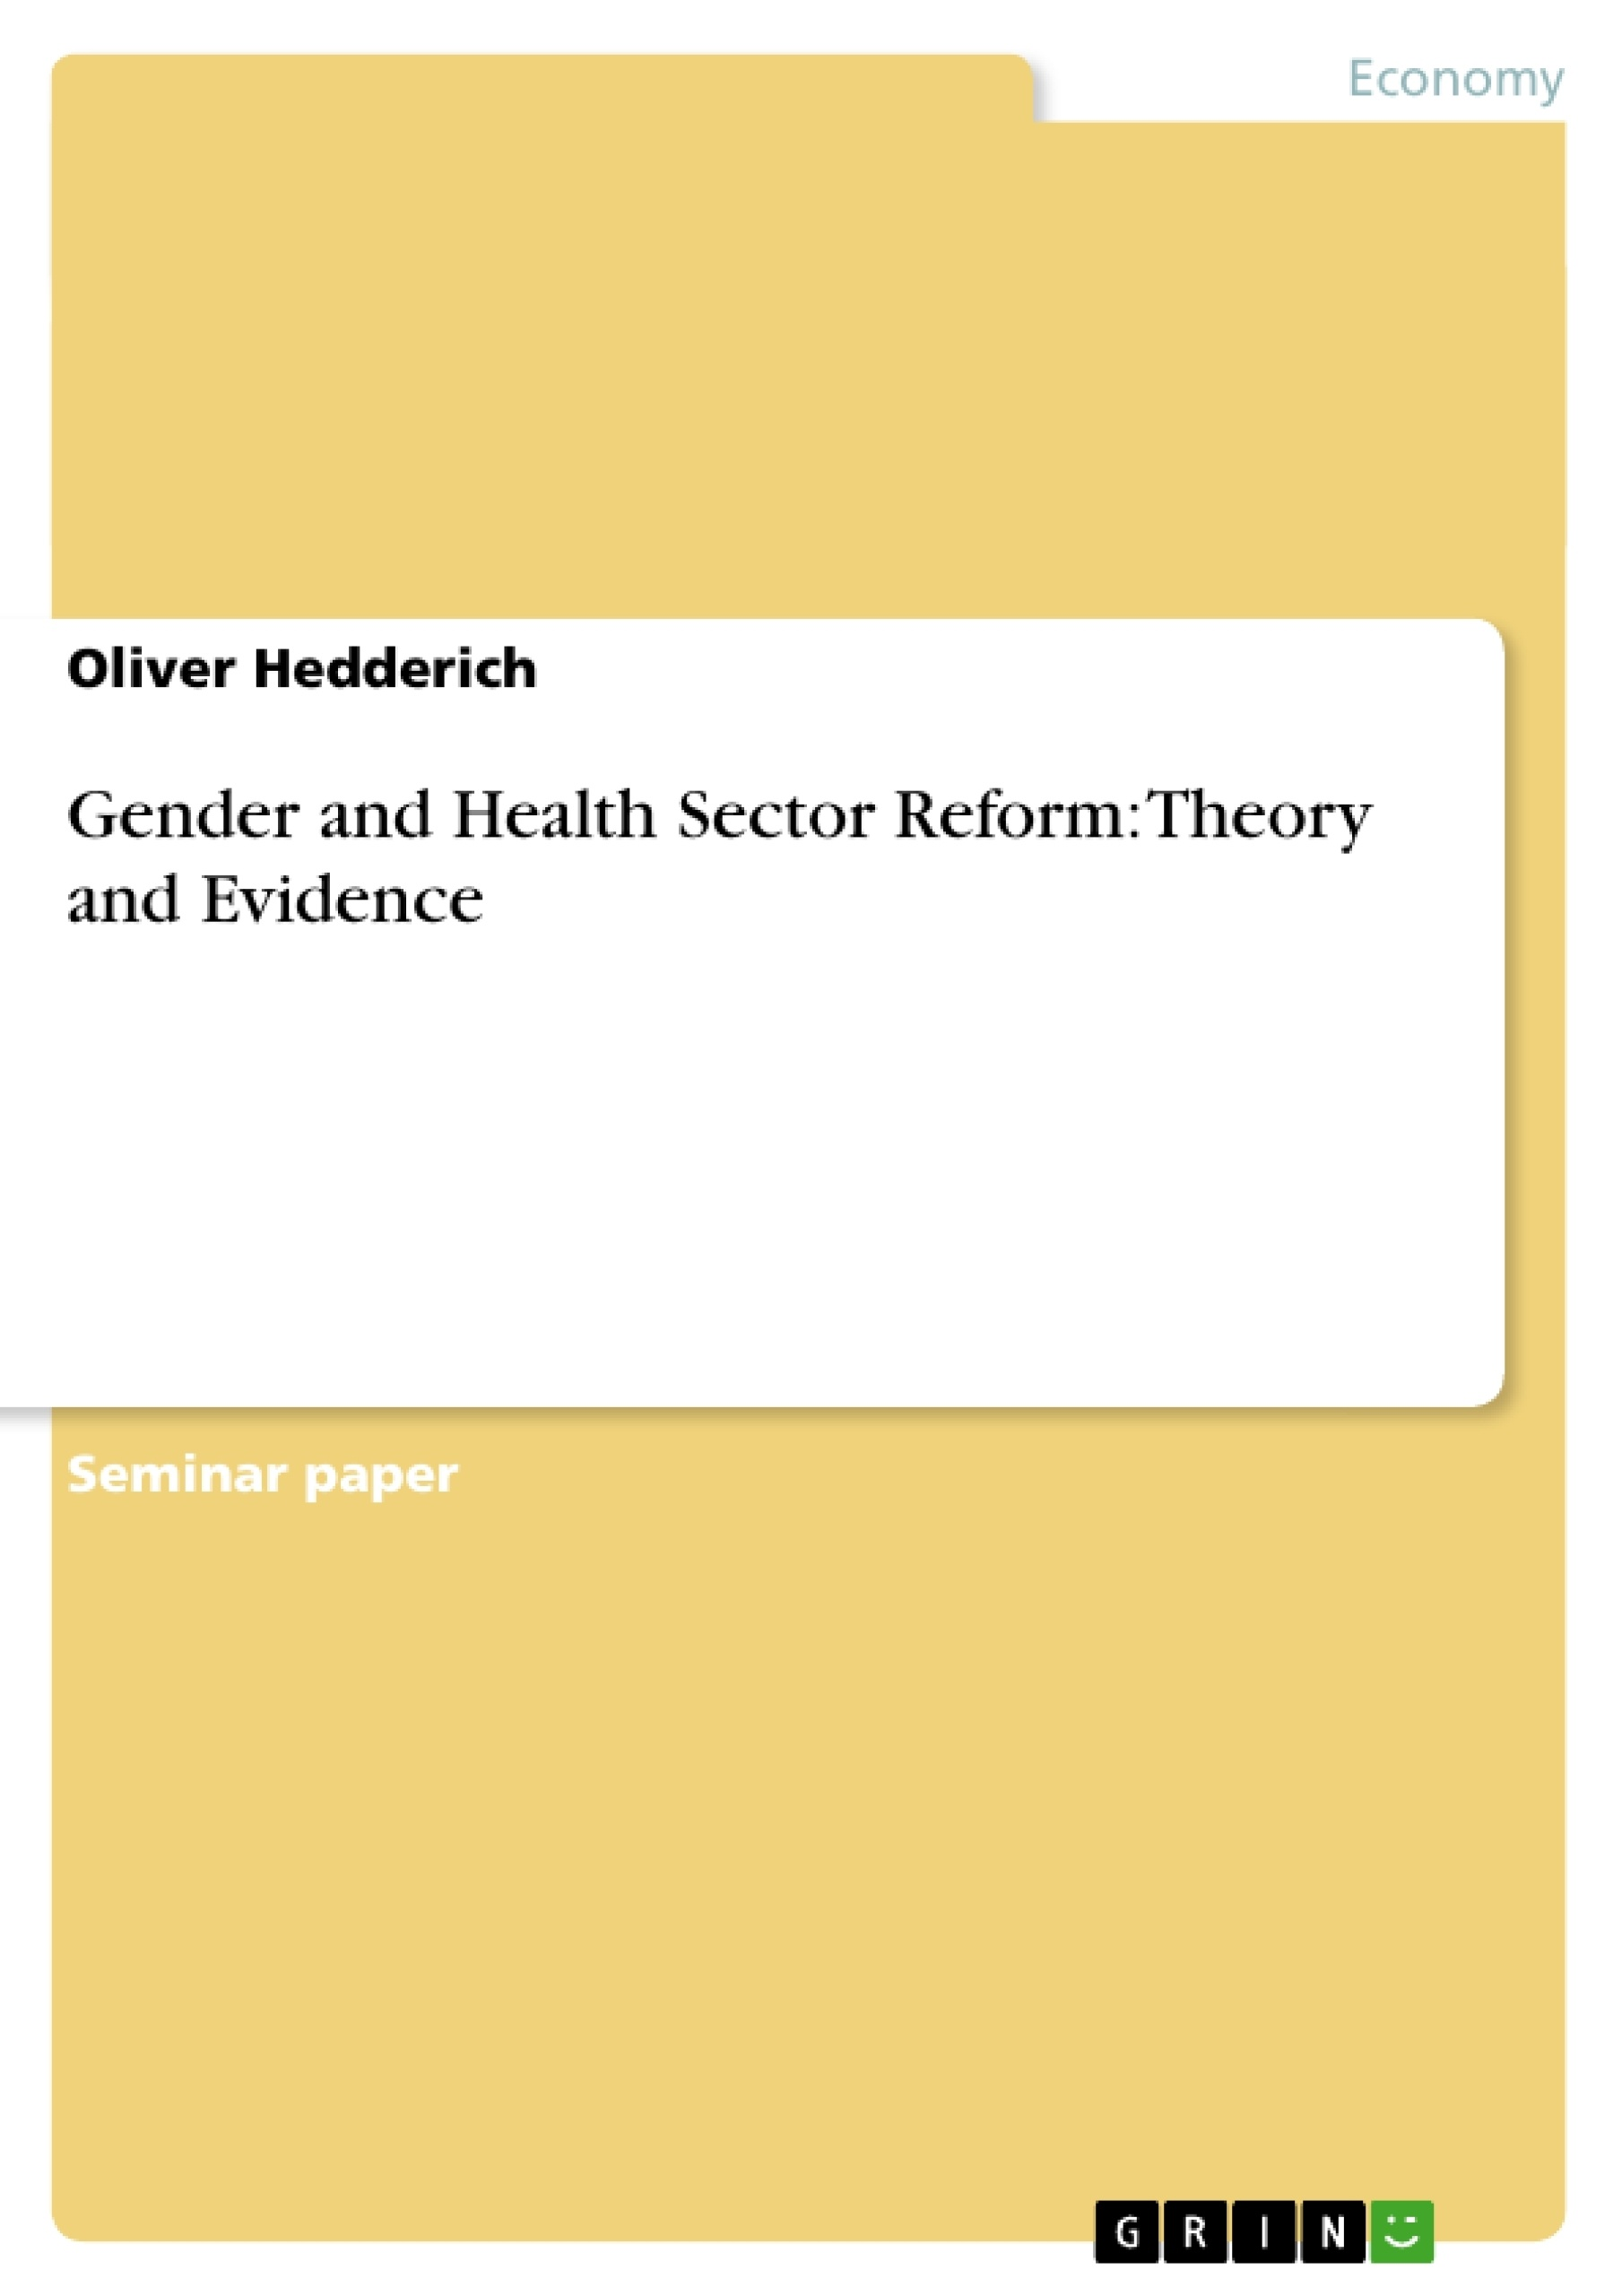 Title: Gender and Health Sector Reform: Theory and Evidence